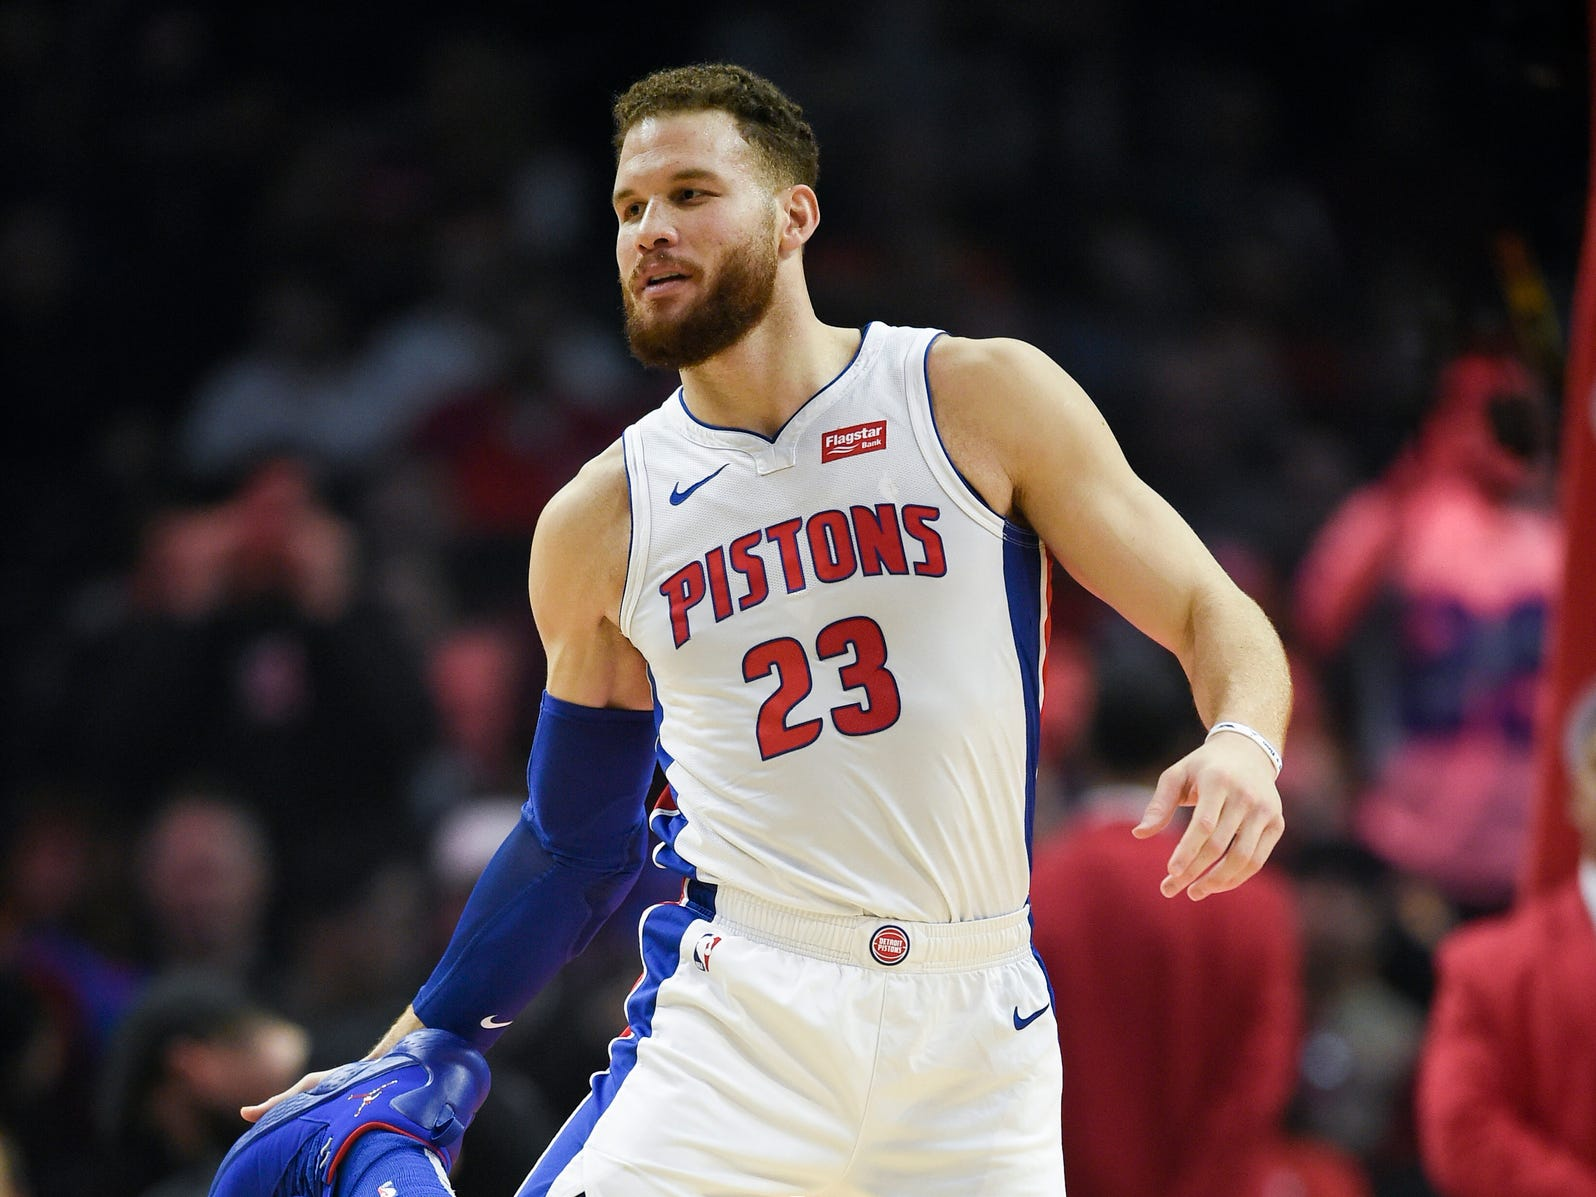 Pistons forward Blake Griffin prepares to take the court prior to the game against the Clippers on Saturday, Jan. 12, 2019, in Los Angeles.